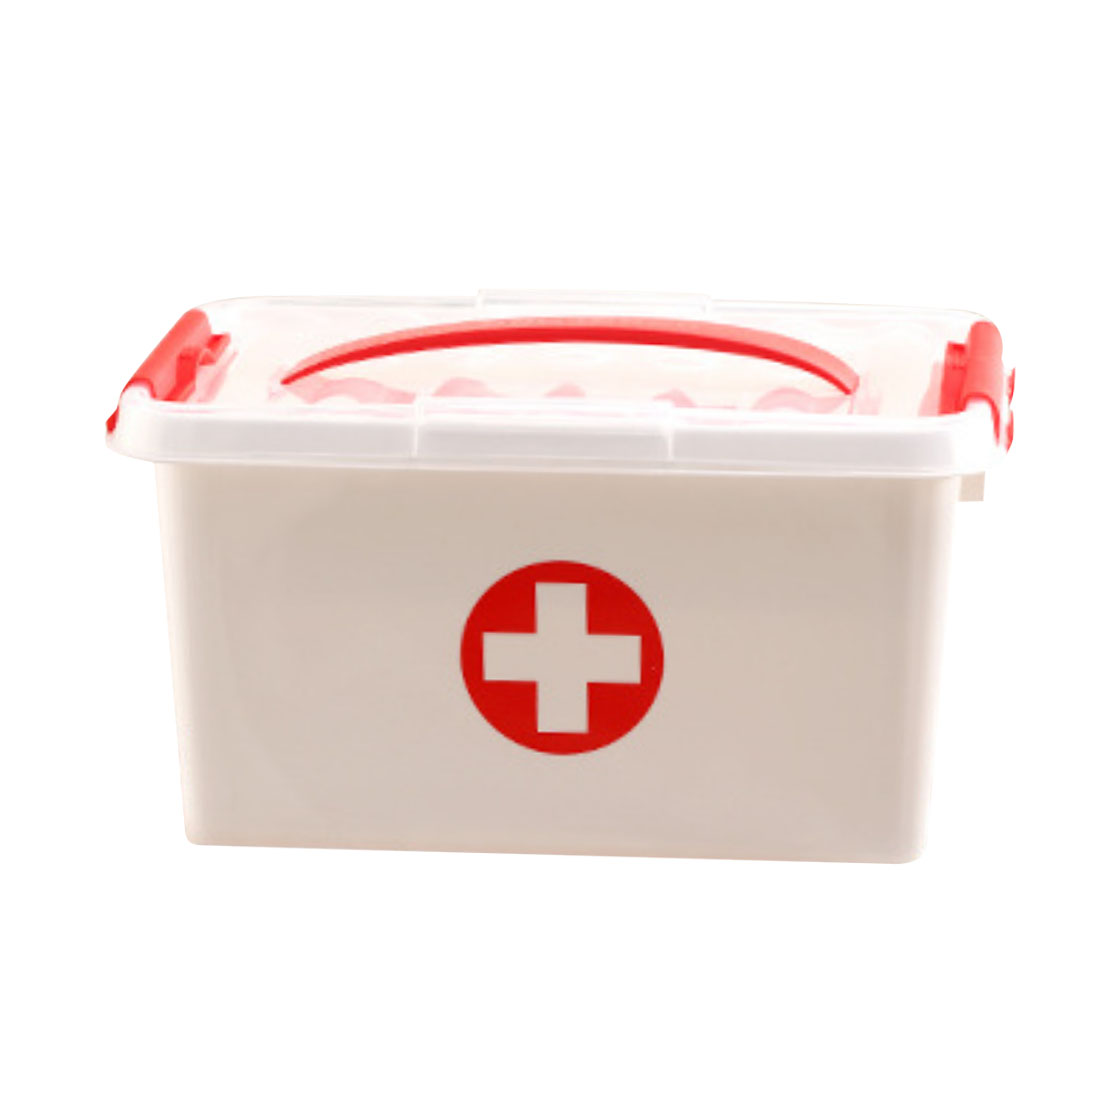 US $14 88 27% OFF|iTECHOR 1 Pcs Plastic Domestic Medical Kit Medicine  Storage Box First Aid Case For Home Office Outdoor Activities Use Hot  Sale-in